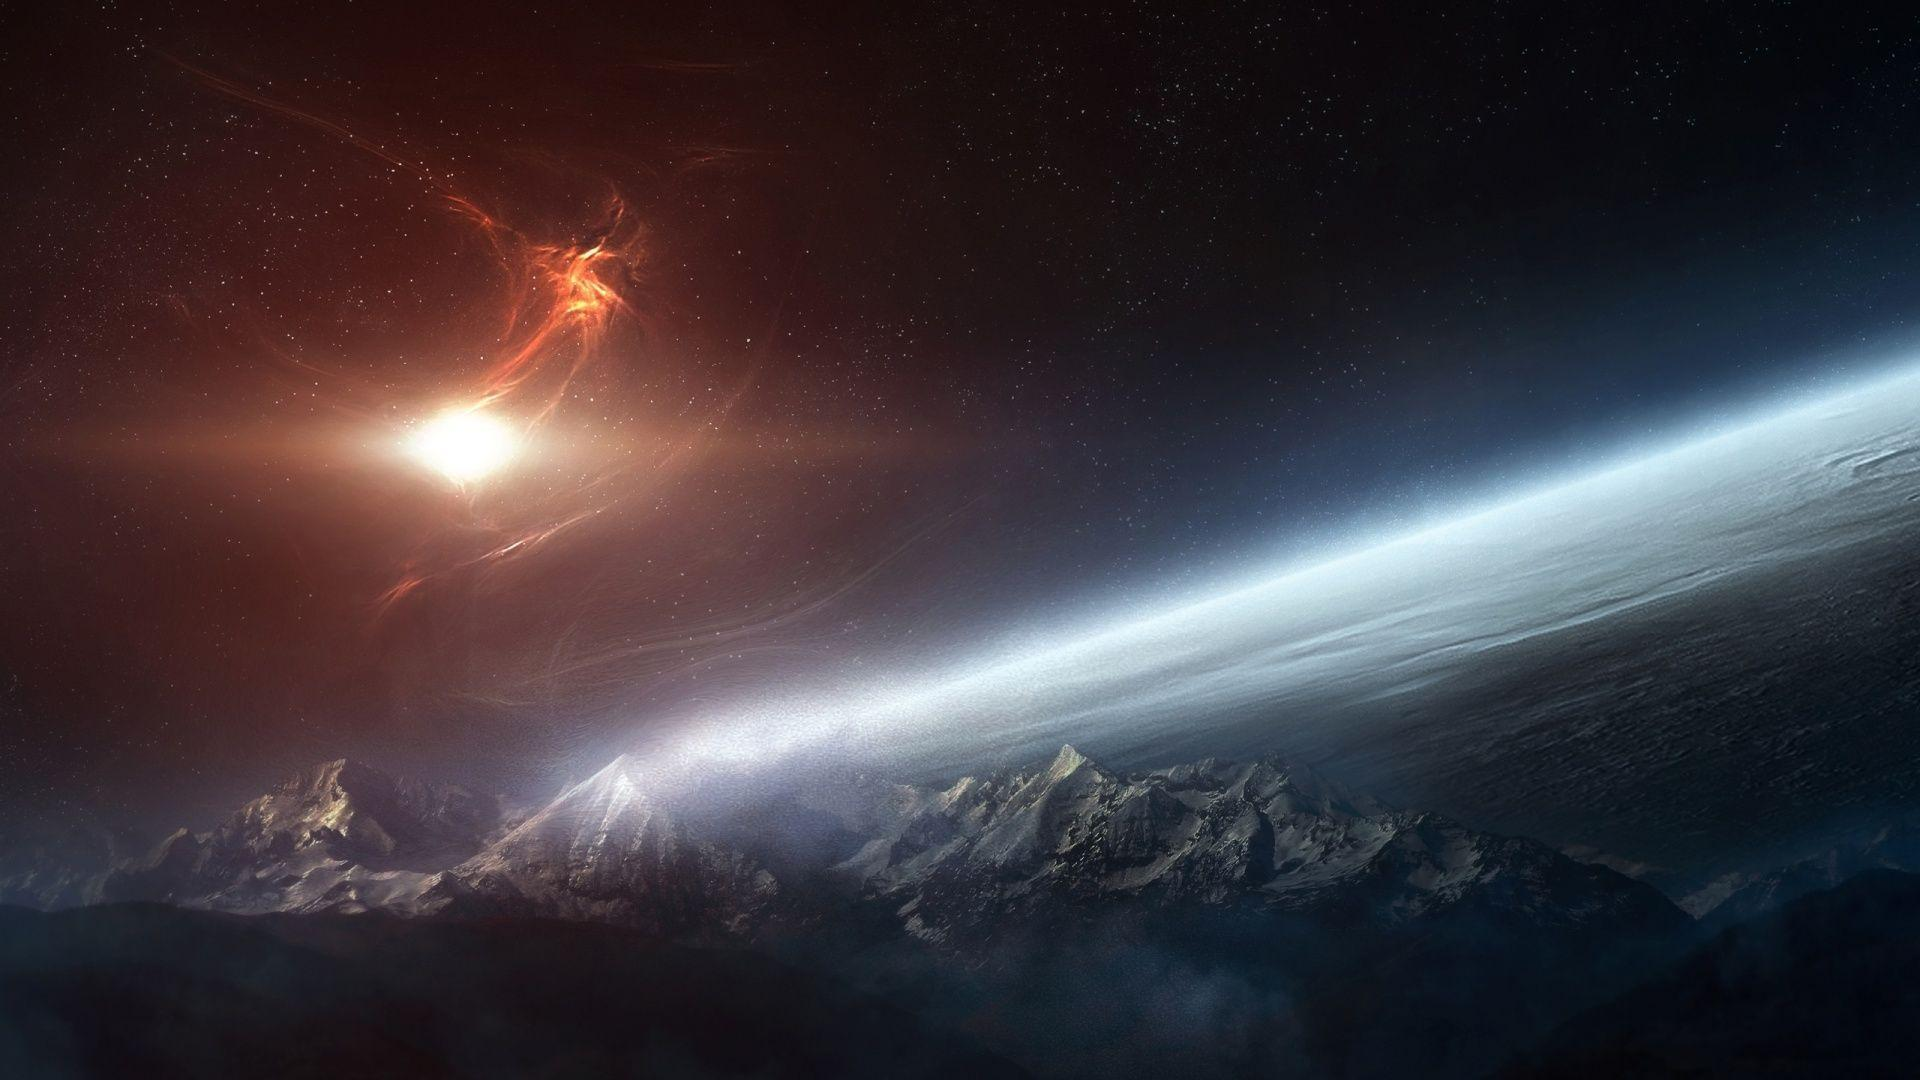 deep space hd wallpaper 1366x768 - photo #11